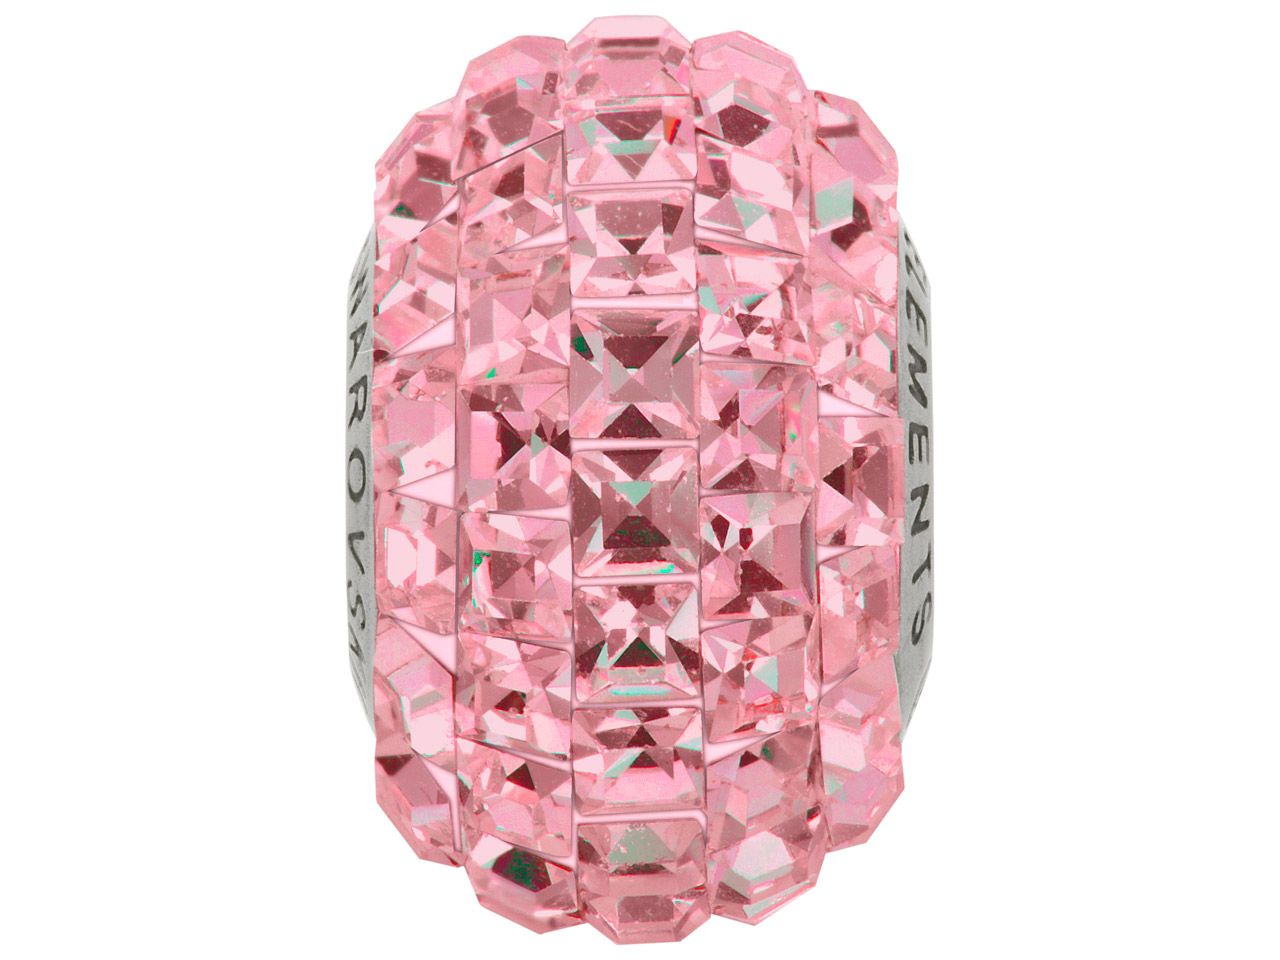 Swarovski Crystal Becharmed Square Pave Charm Bead, 80 201, 15mm,     Light Rose